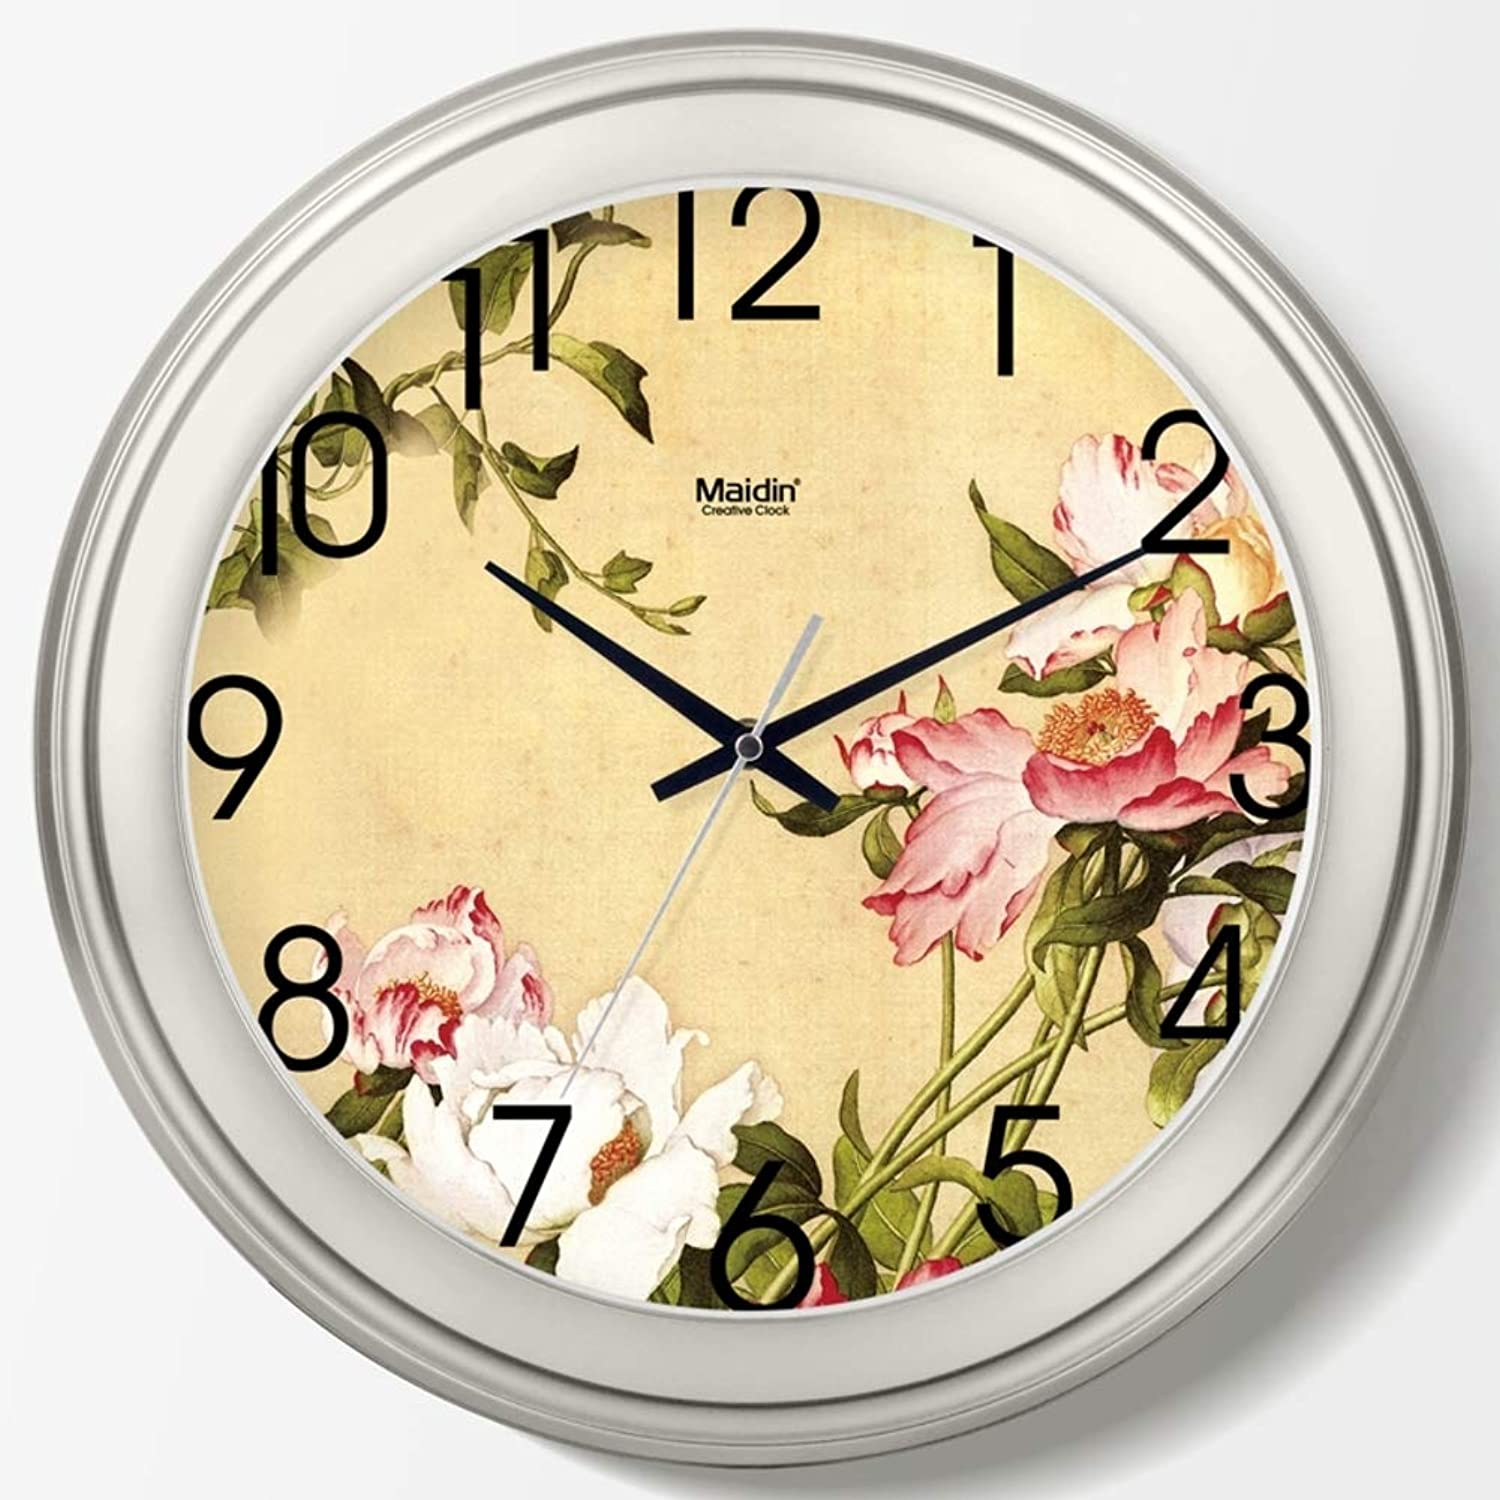 European Vintage Wall Clock Peony Accurate Silent Round Glass Cover Quartz for Living Room BedroomD 25cm(9.8inch)